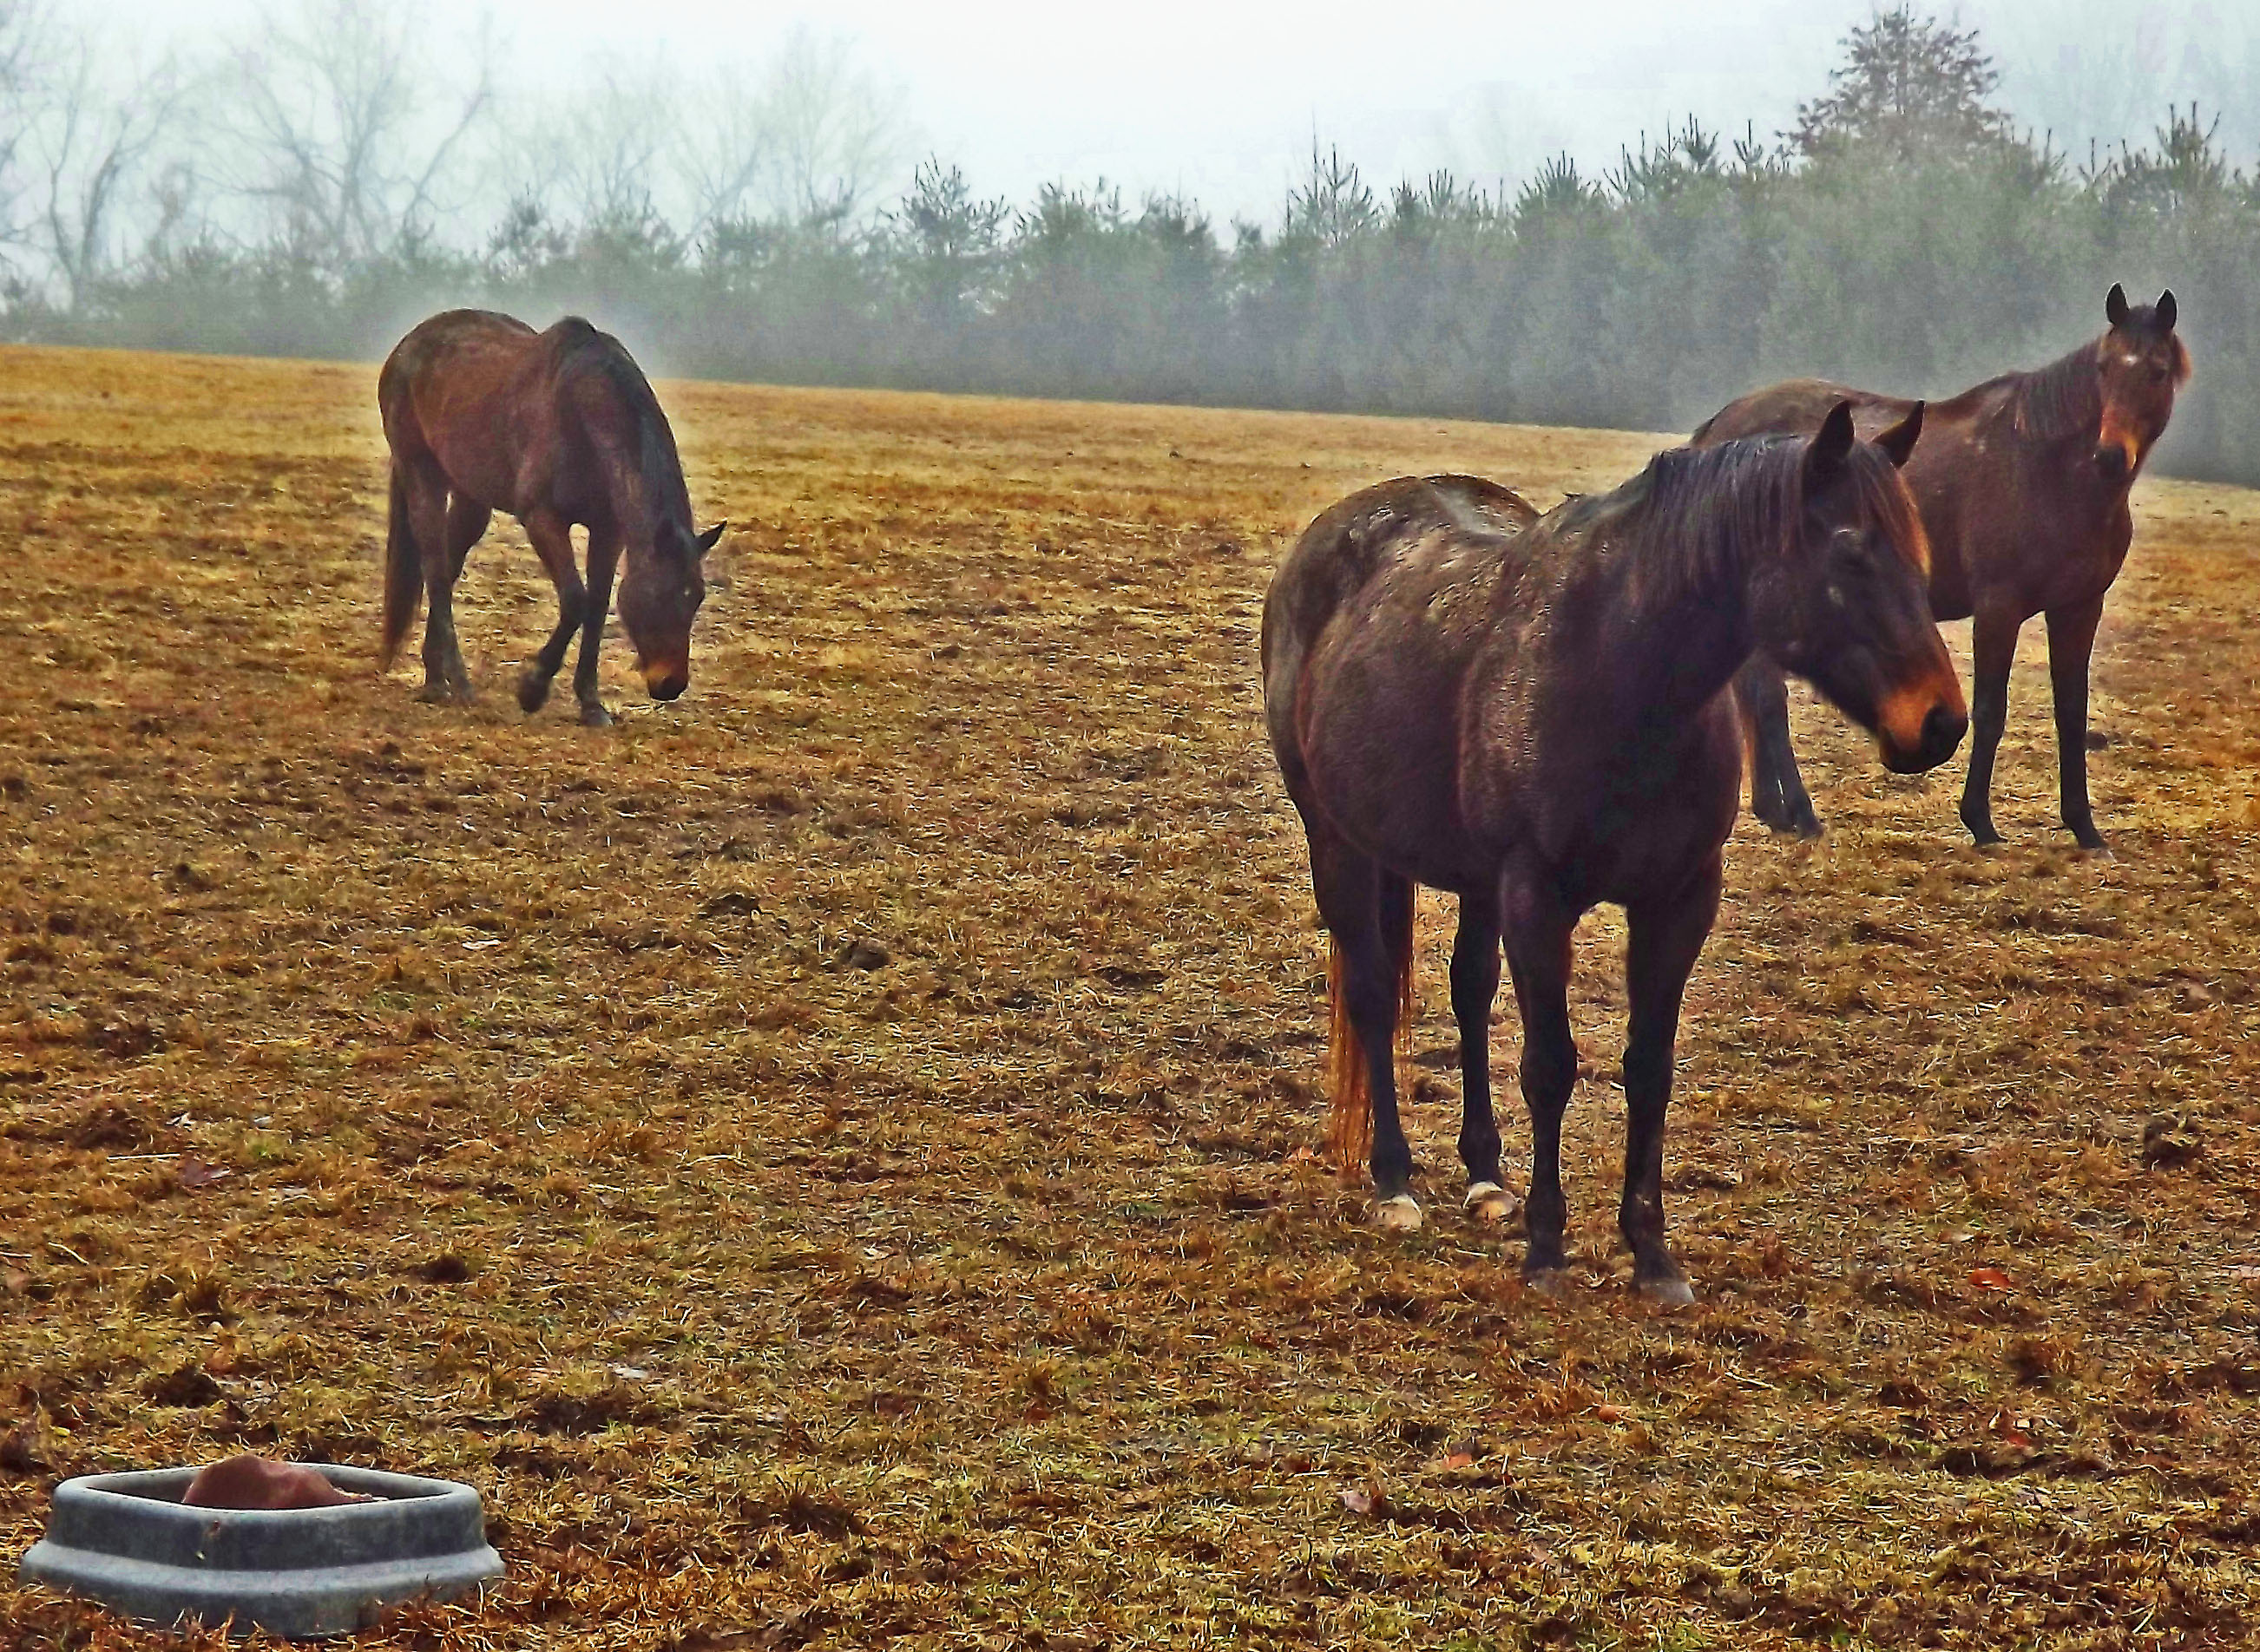 Aging Horses In The Field